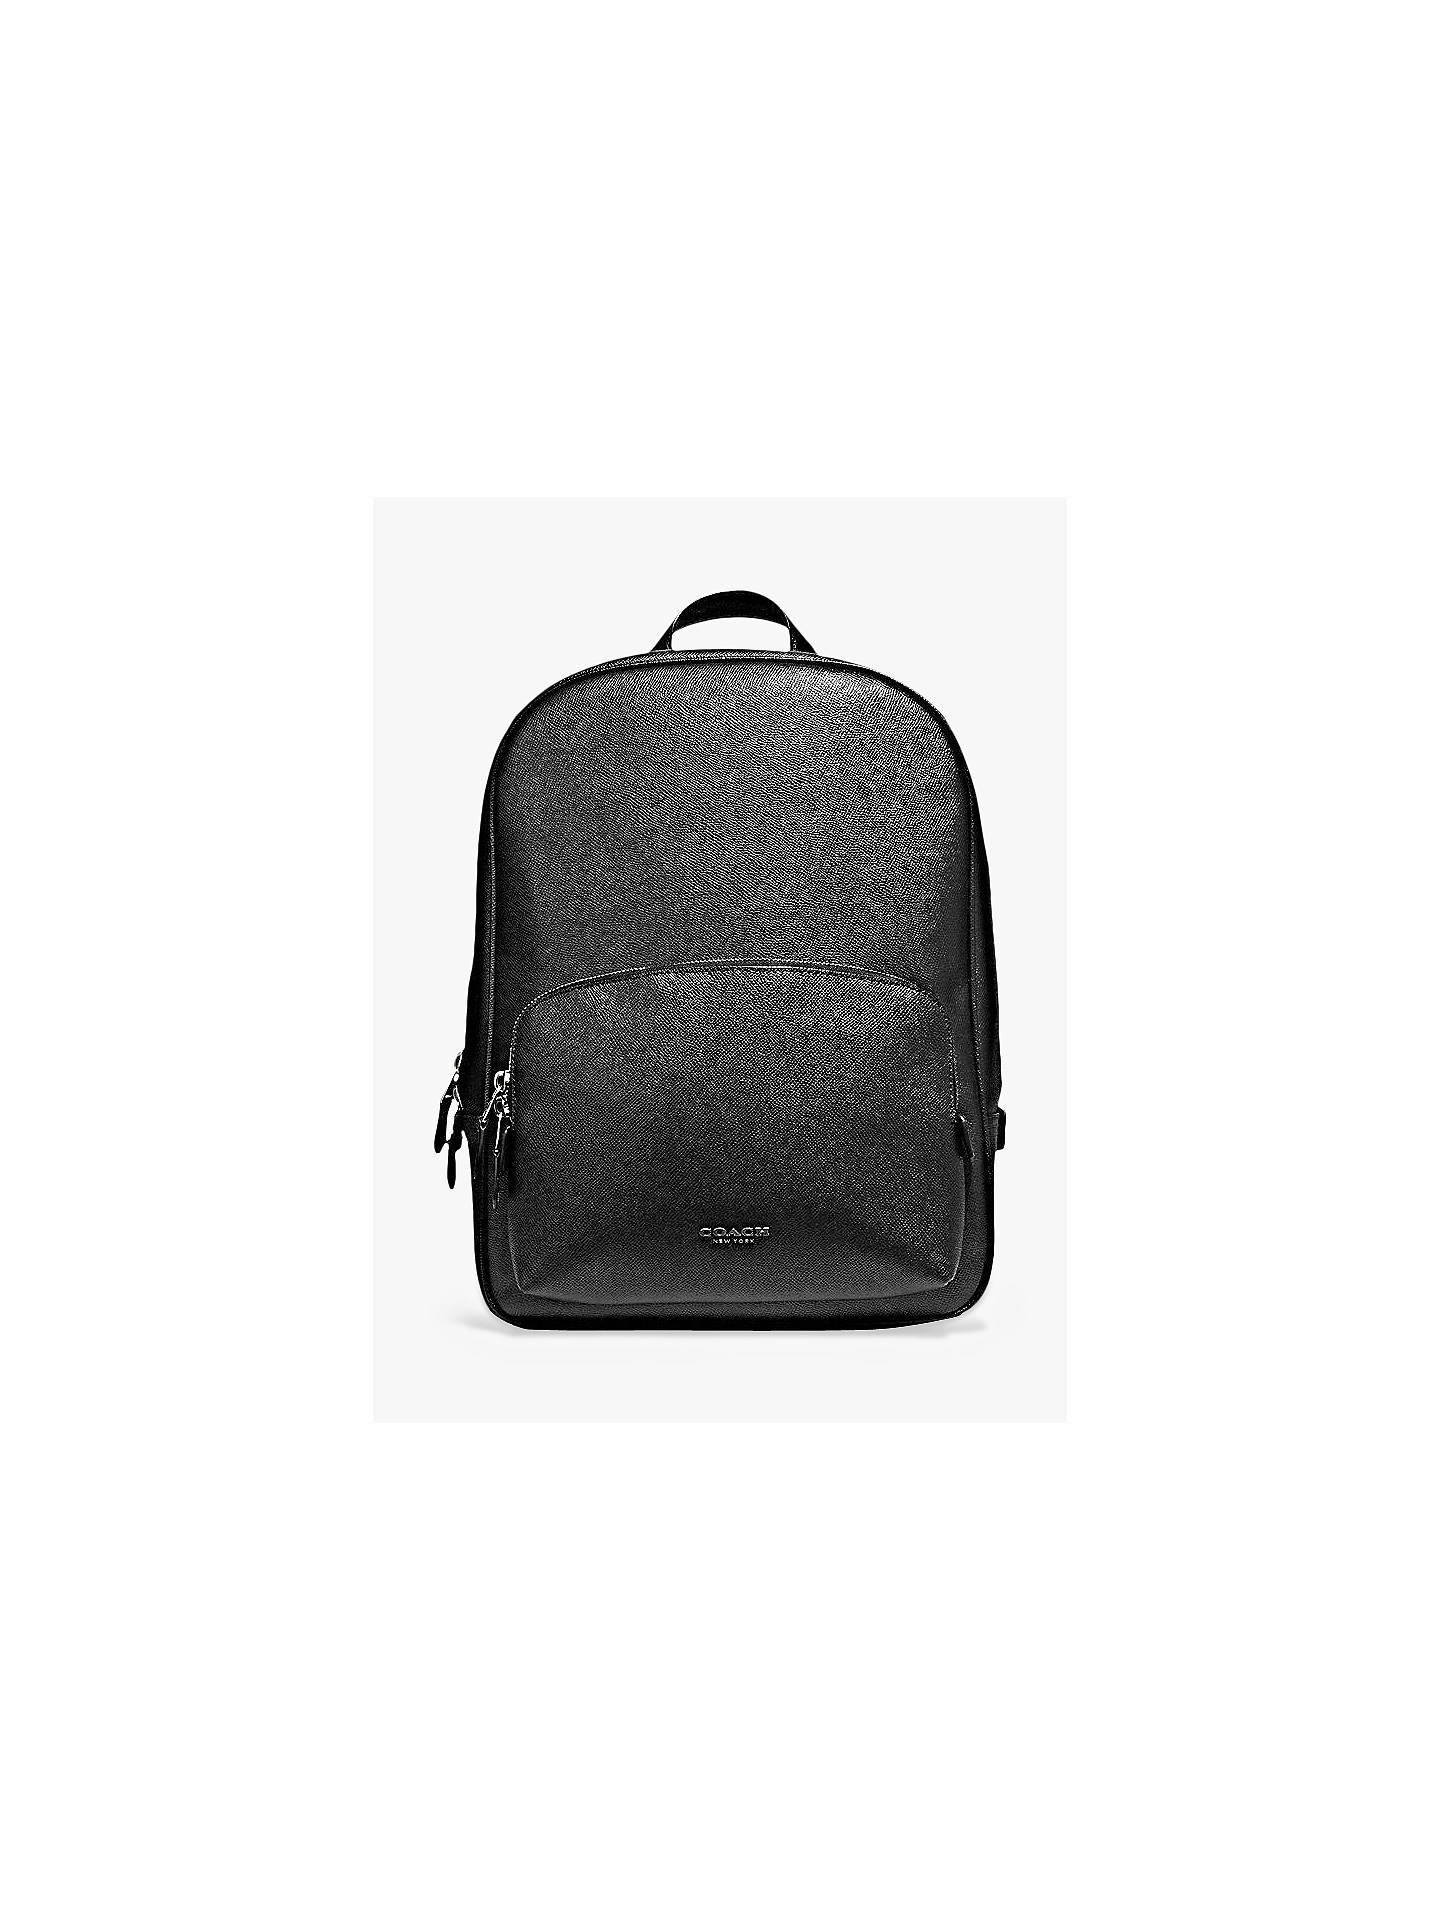 25d63bf58e Coach Kennedy Leather Backpack, Black